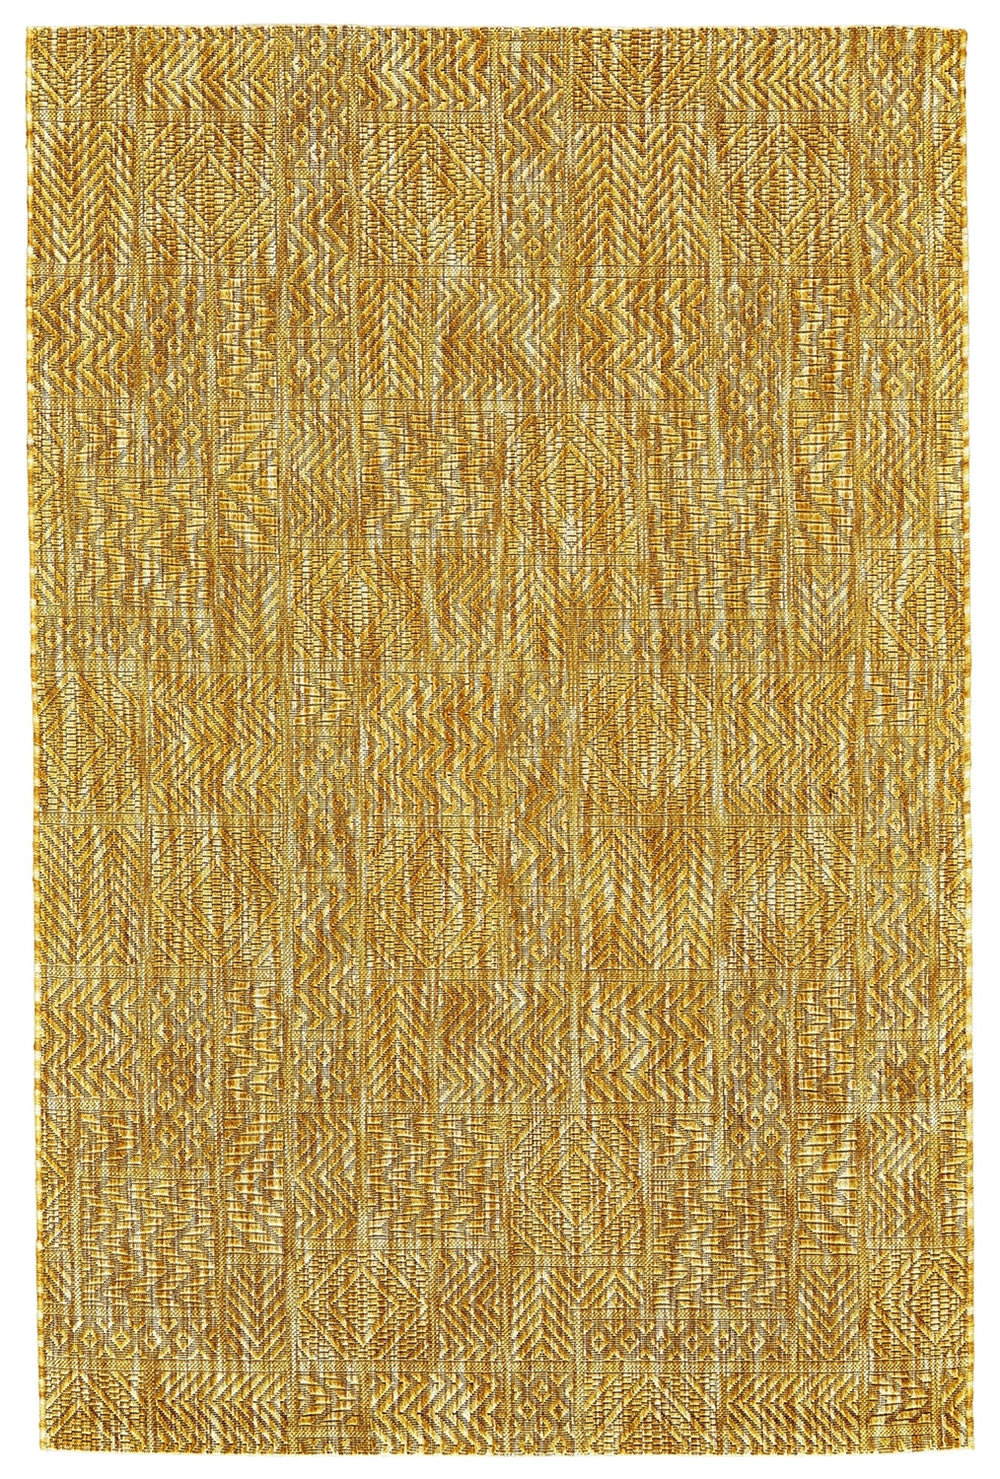 Feizy MATTISON 3826F Area Rug